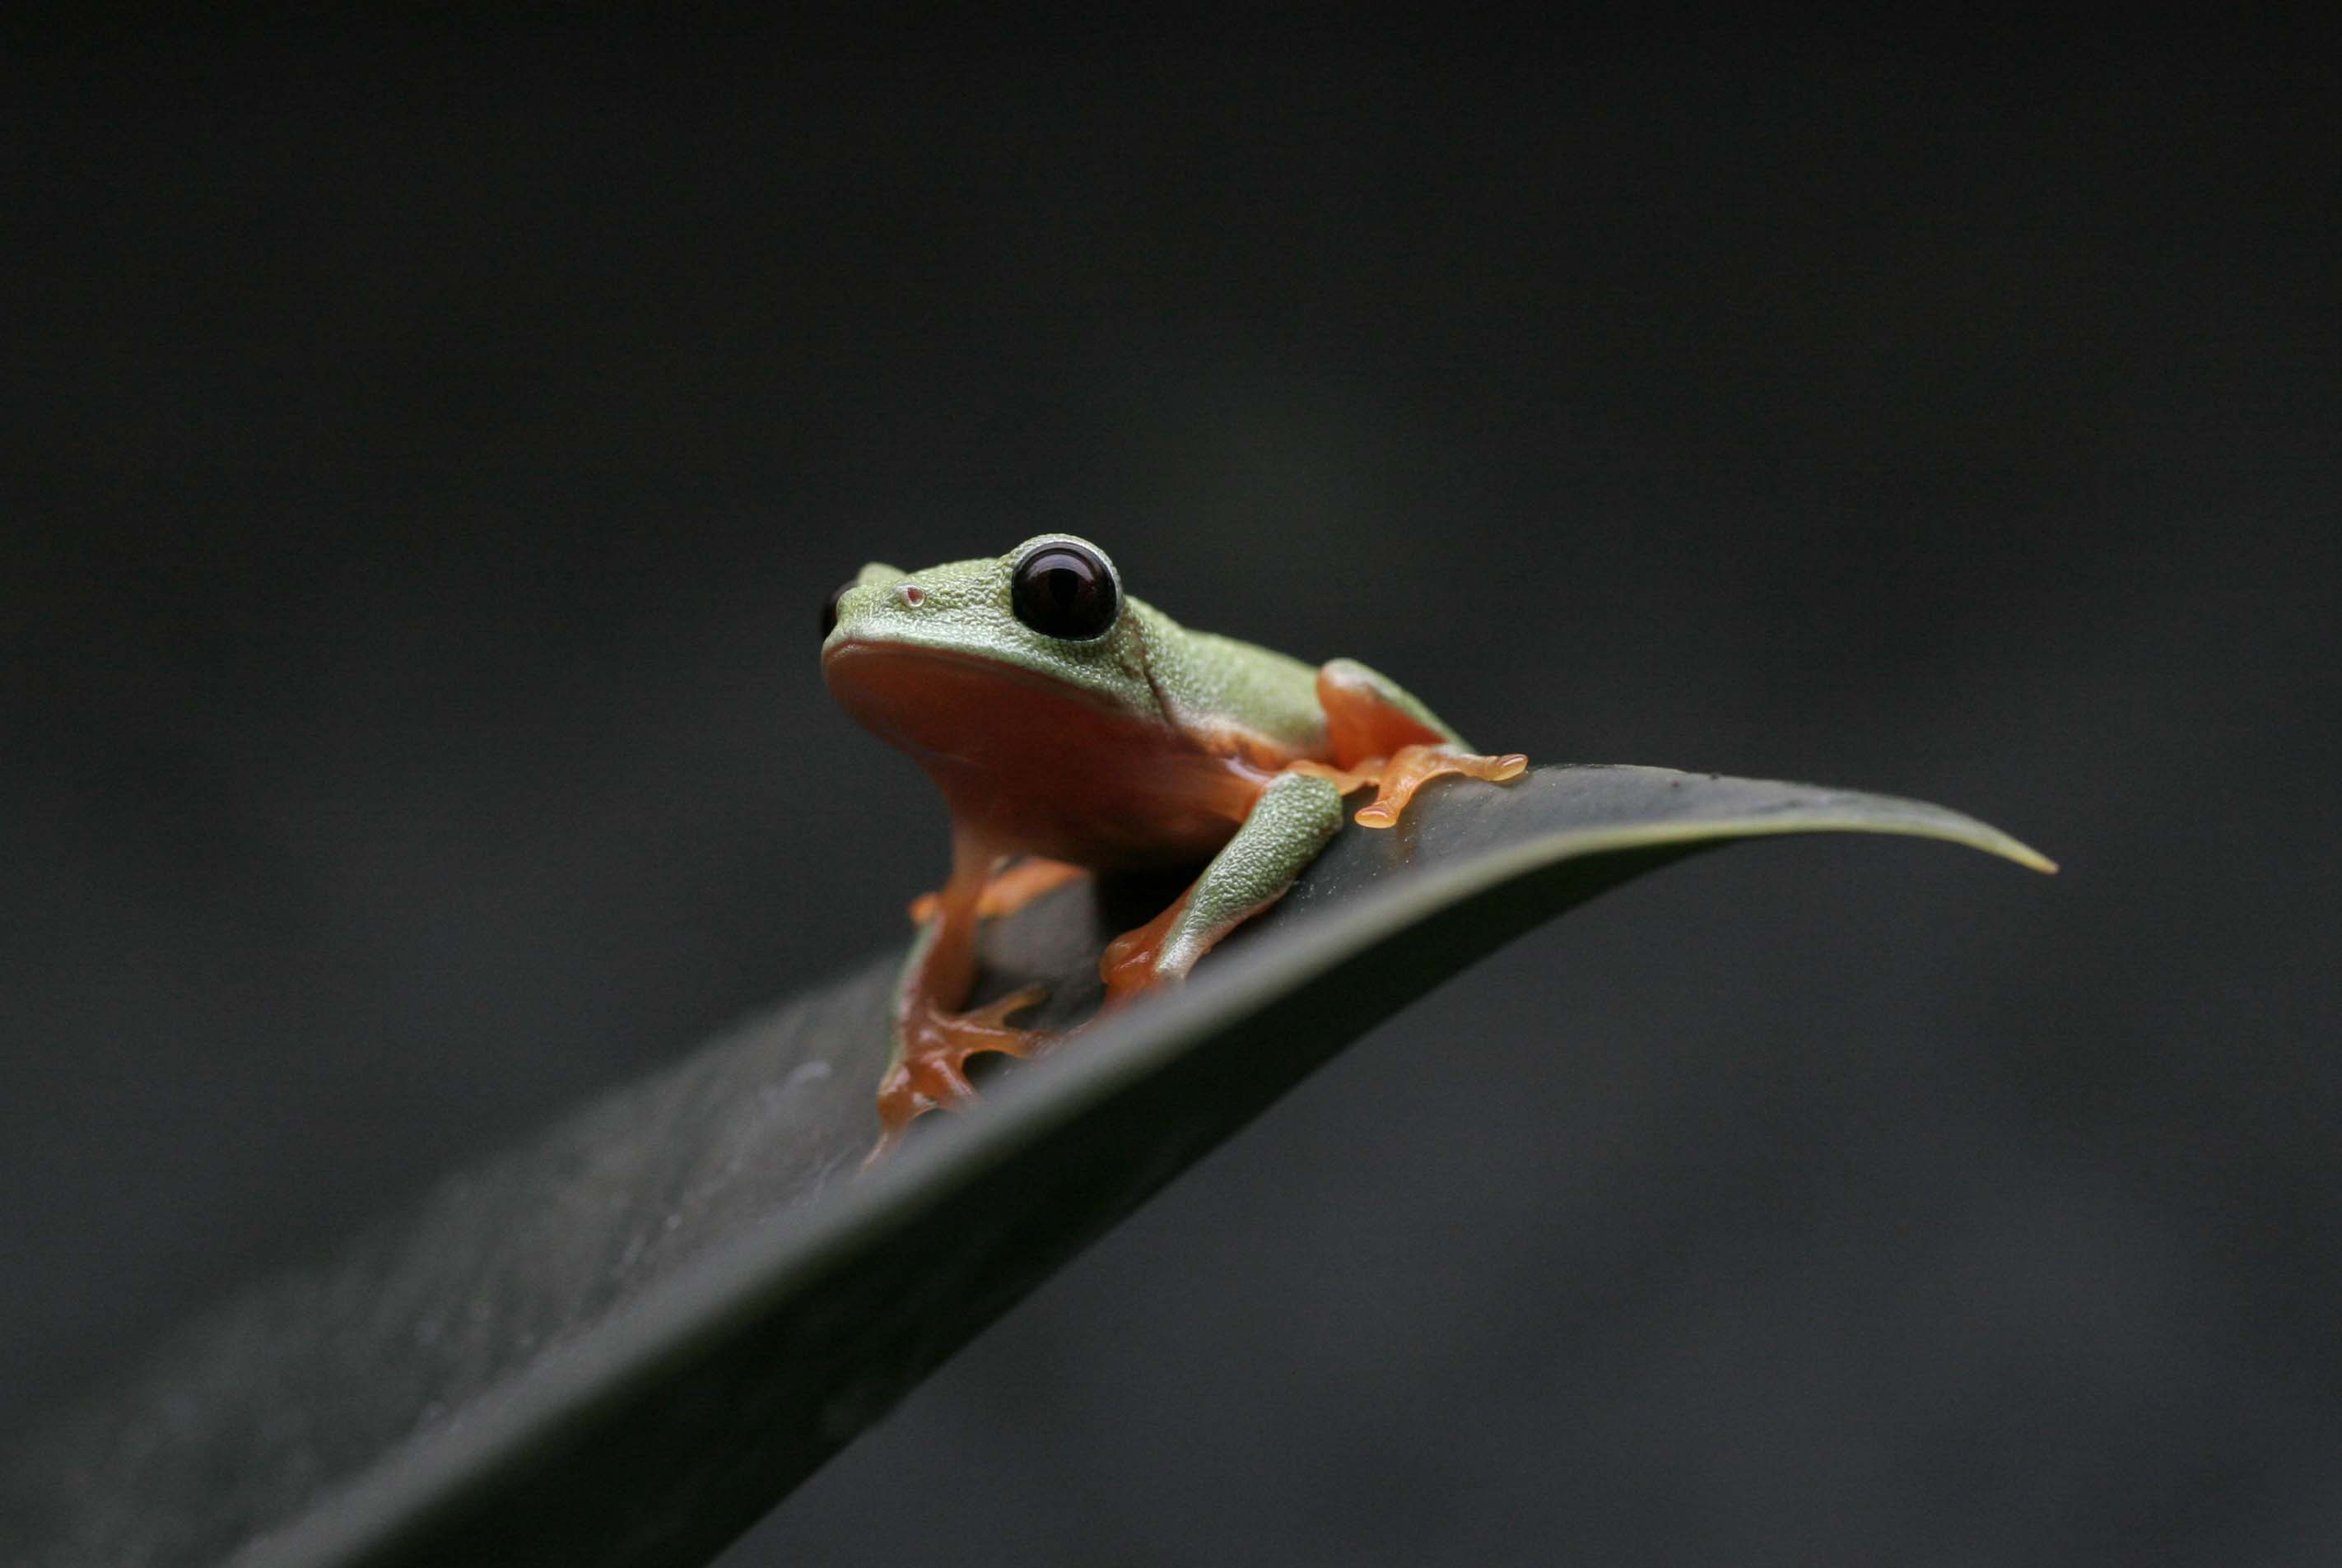 Morelet's tree frog (Agalychnis moreletii)